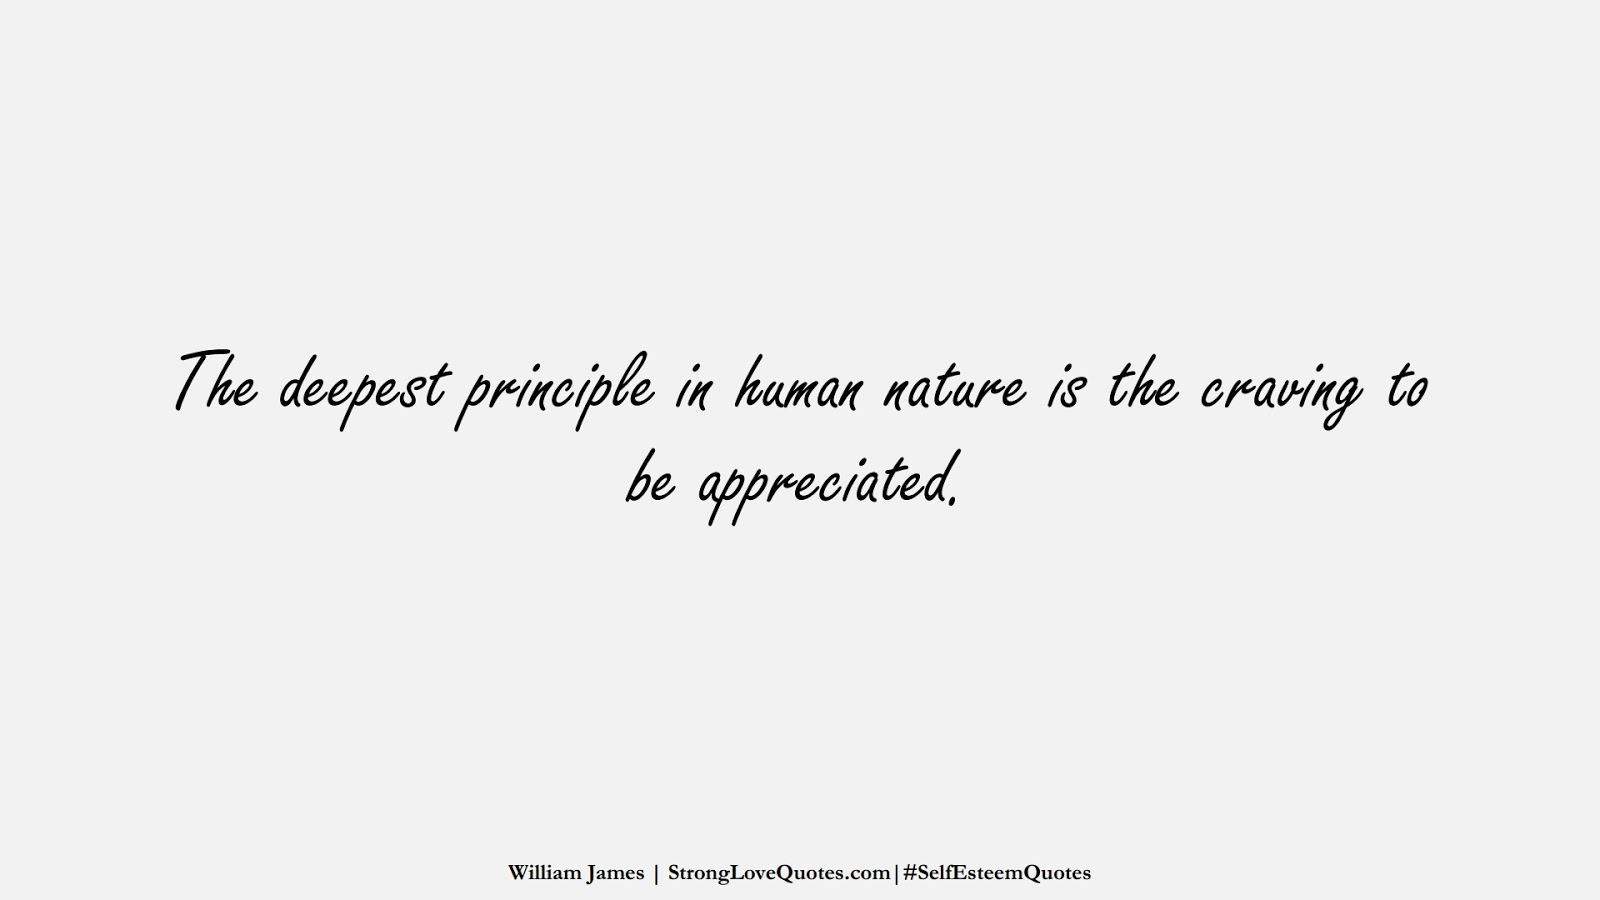 The deepest principle in human nature is the craving to be appreciated. (William James);  #SelfEsteemQuotes